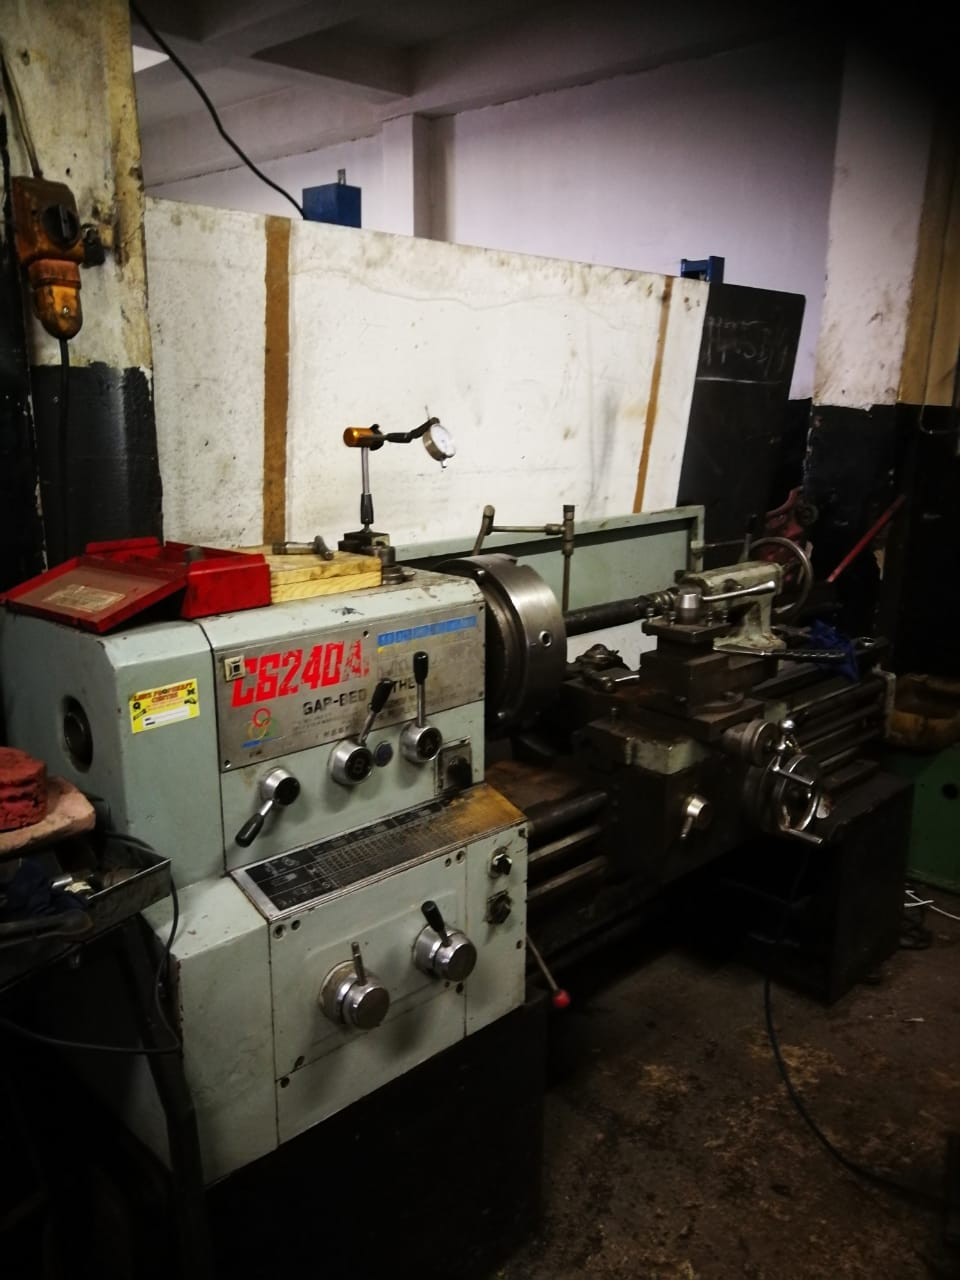 Propshaft and motor vehicle equipment for sale